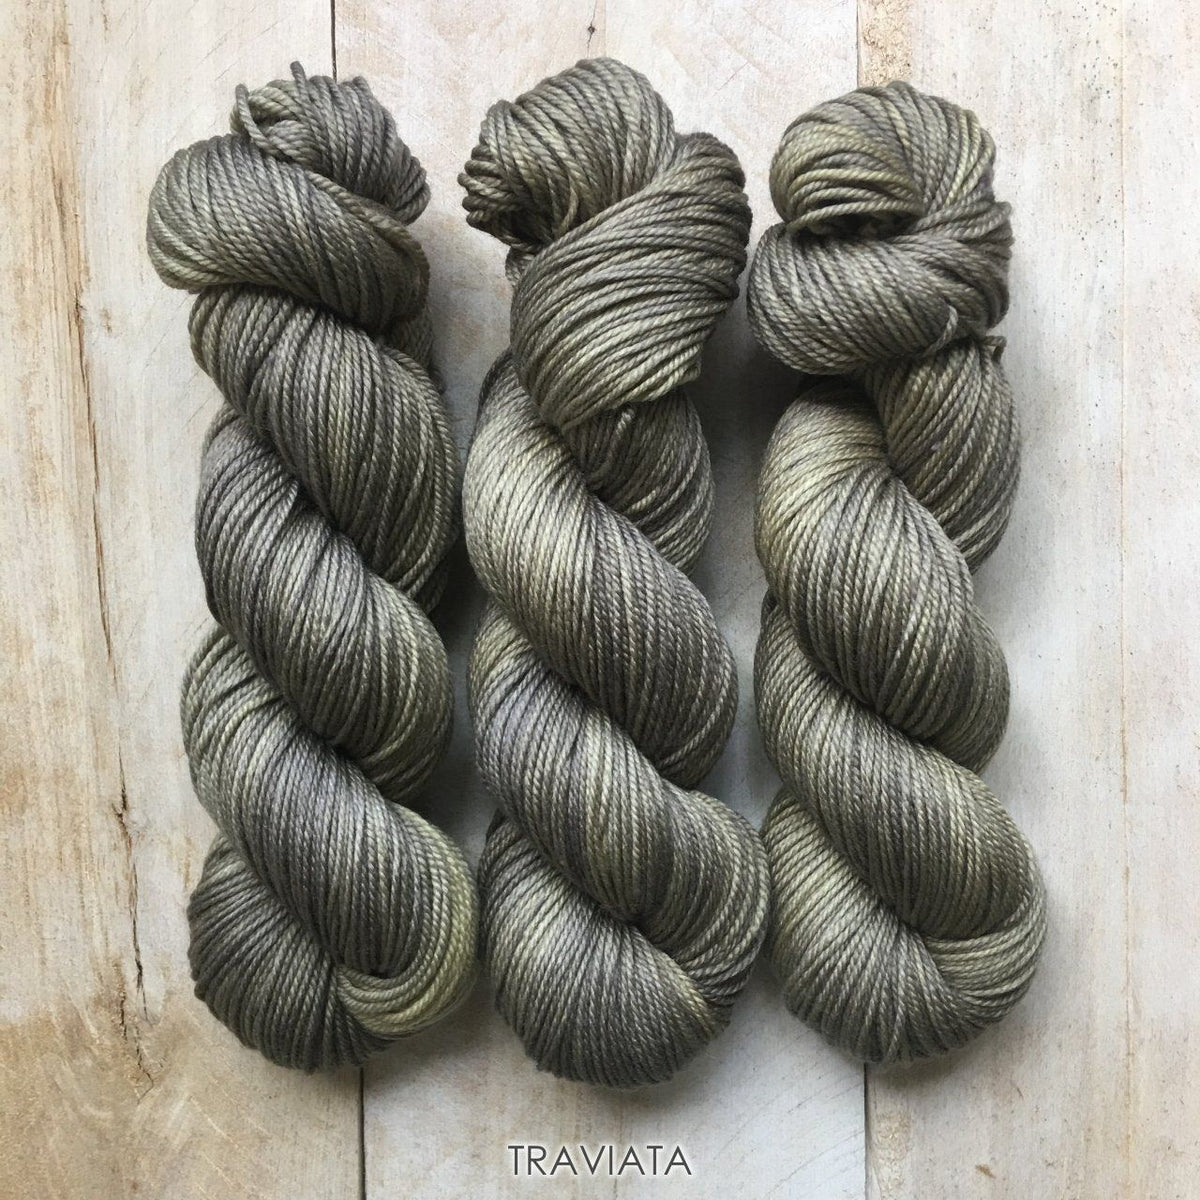 TRAVIATA by Louise Robert Design | DK PURE hand-dyed semi-solid yarn